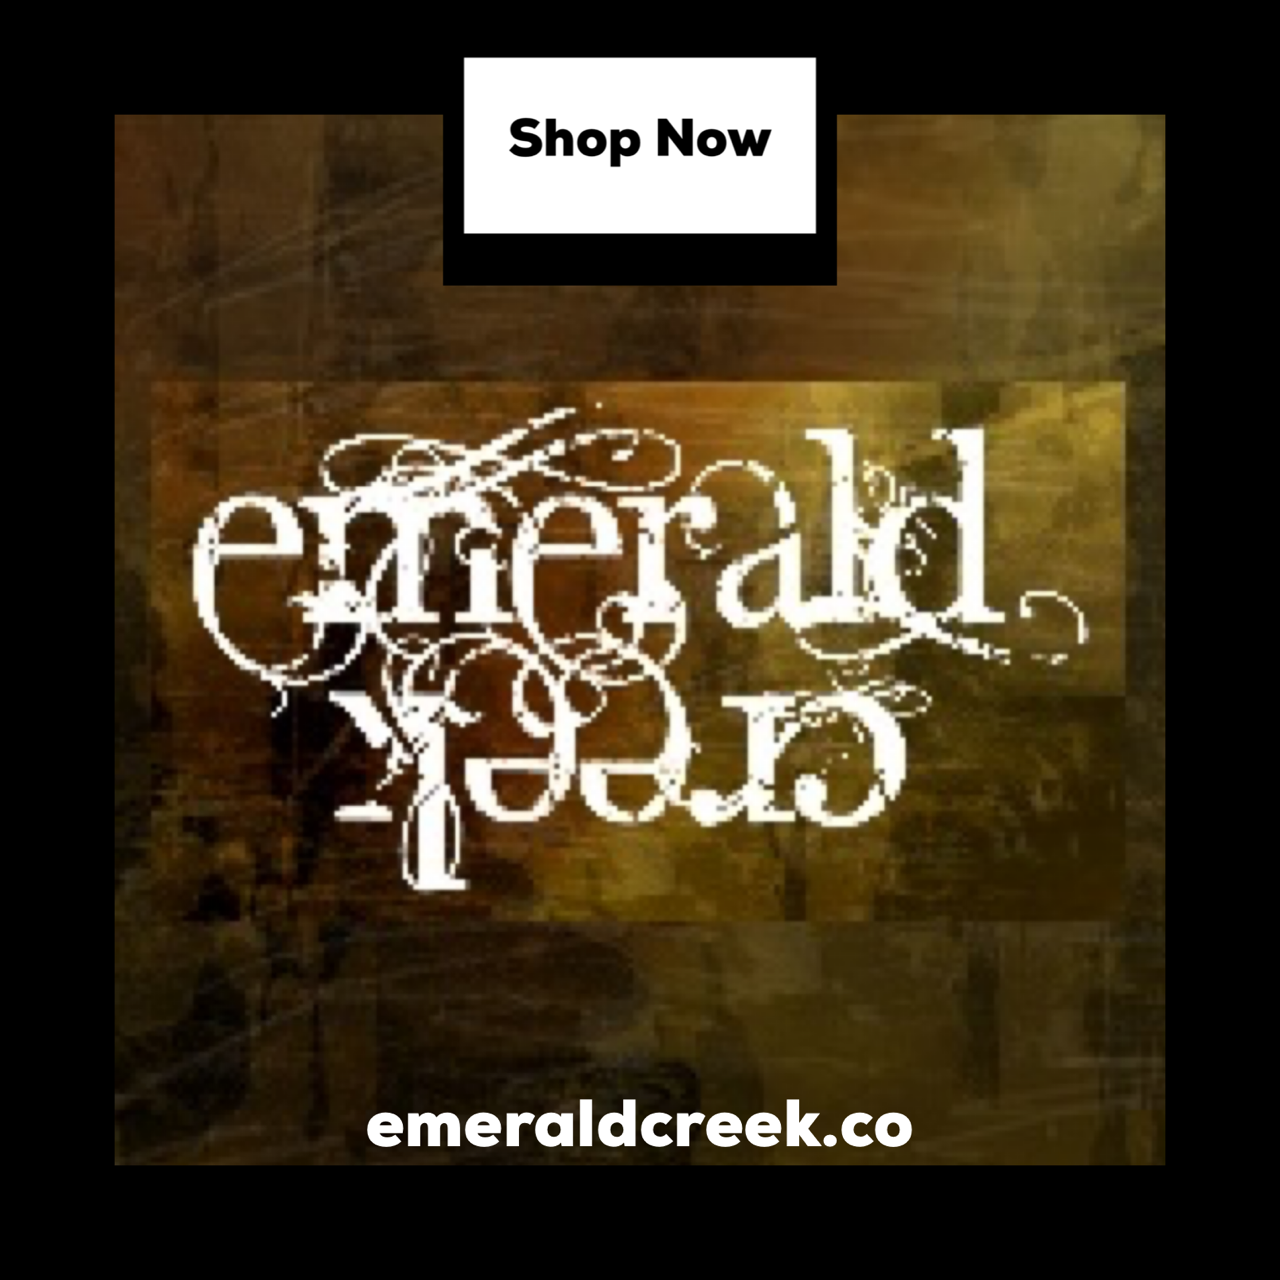 Emerald Creek Craft Supplies